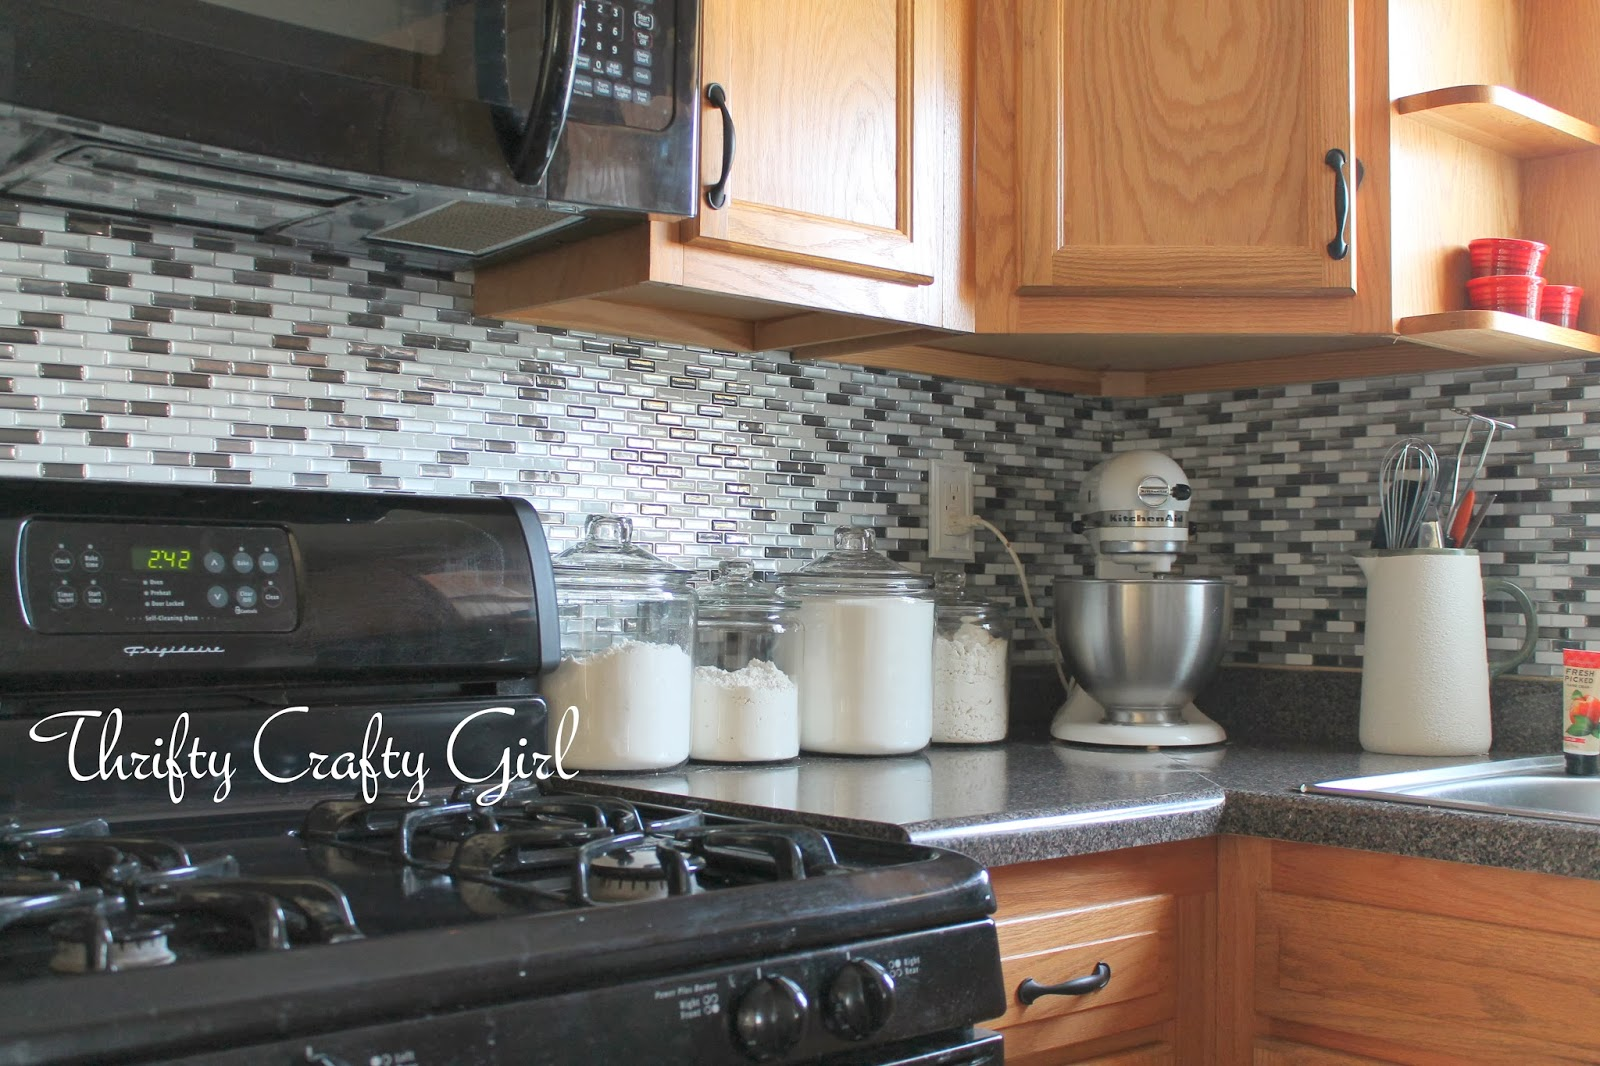 Diy Tile Backsplash Kitchen Thrifty Crafty Girl Easy Kitchen Backsplash With Smart Tiles